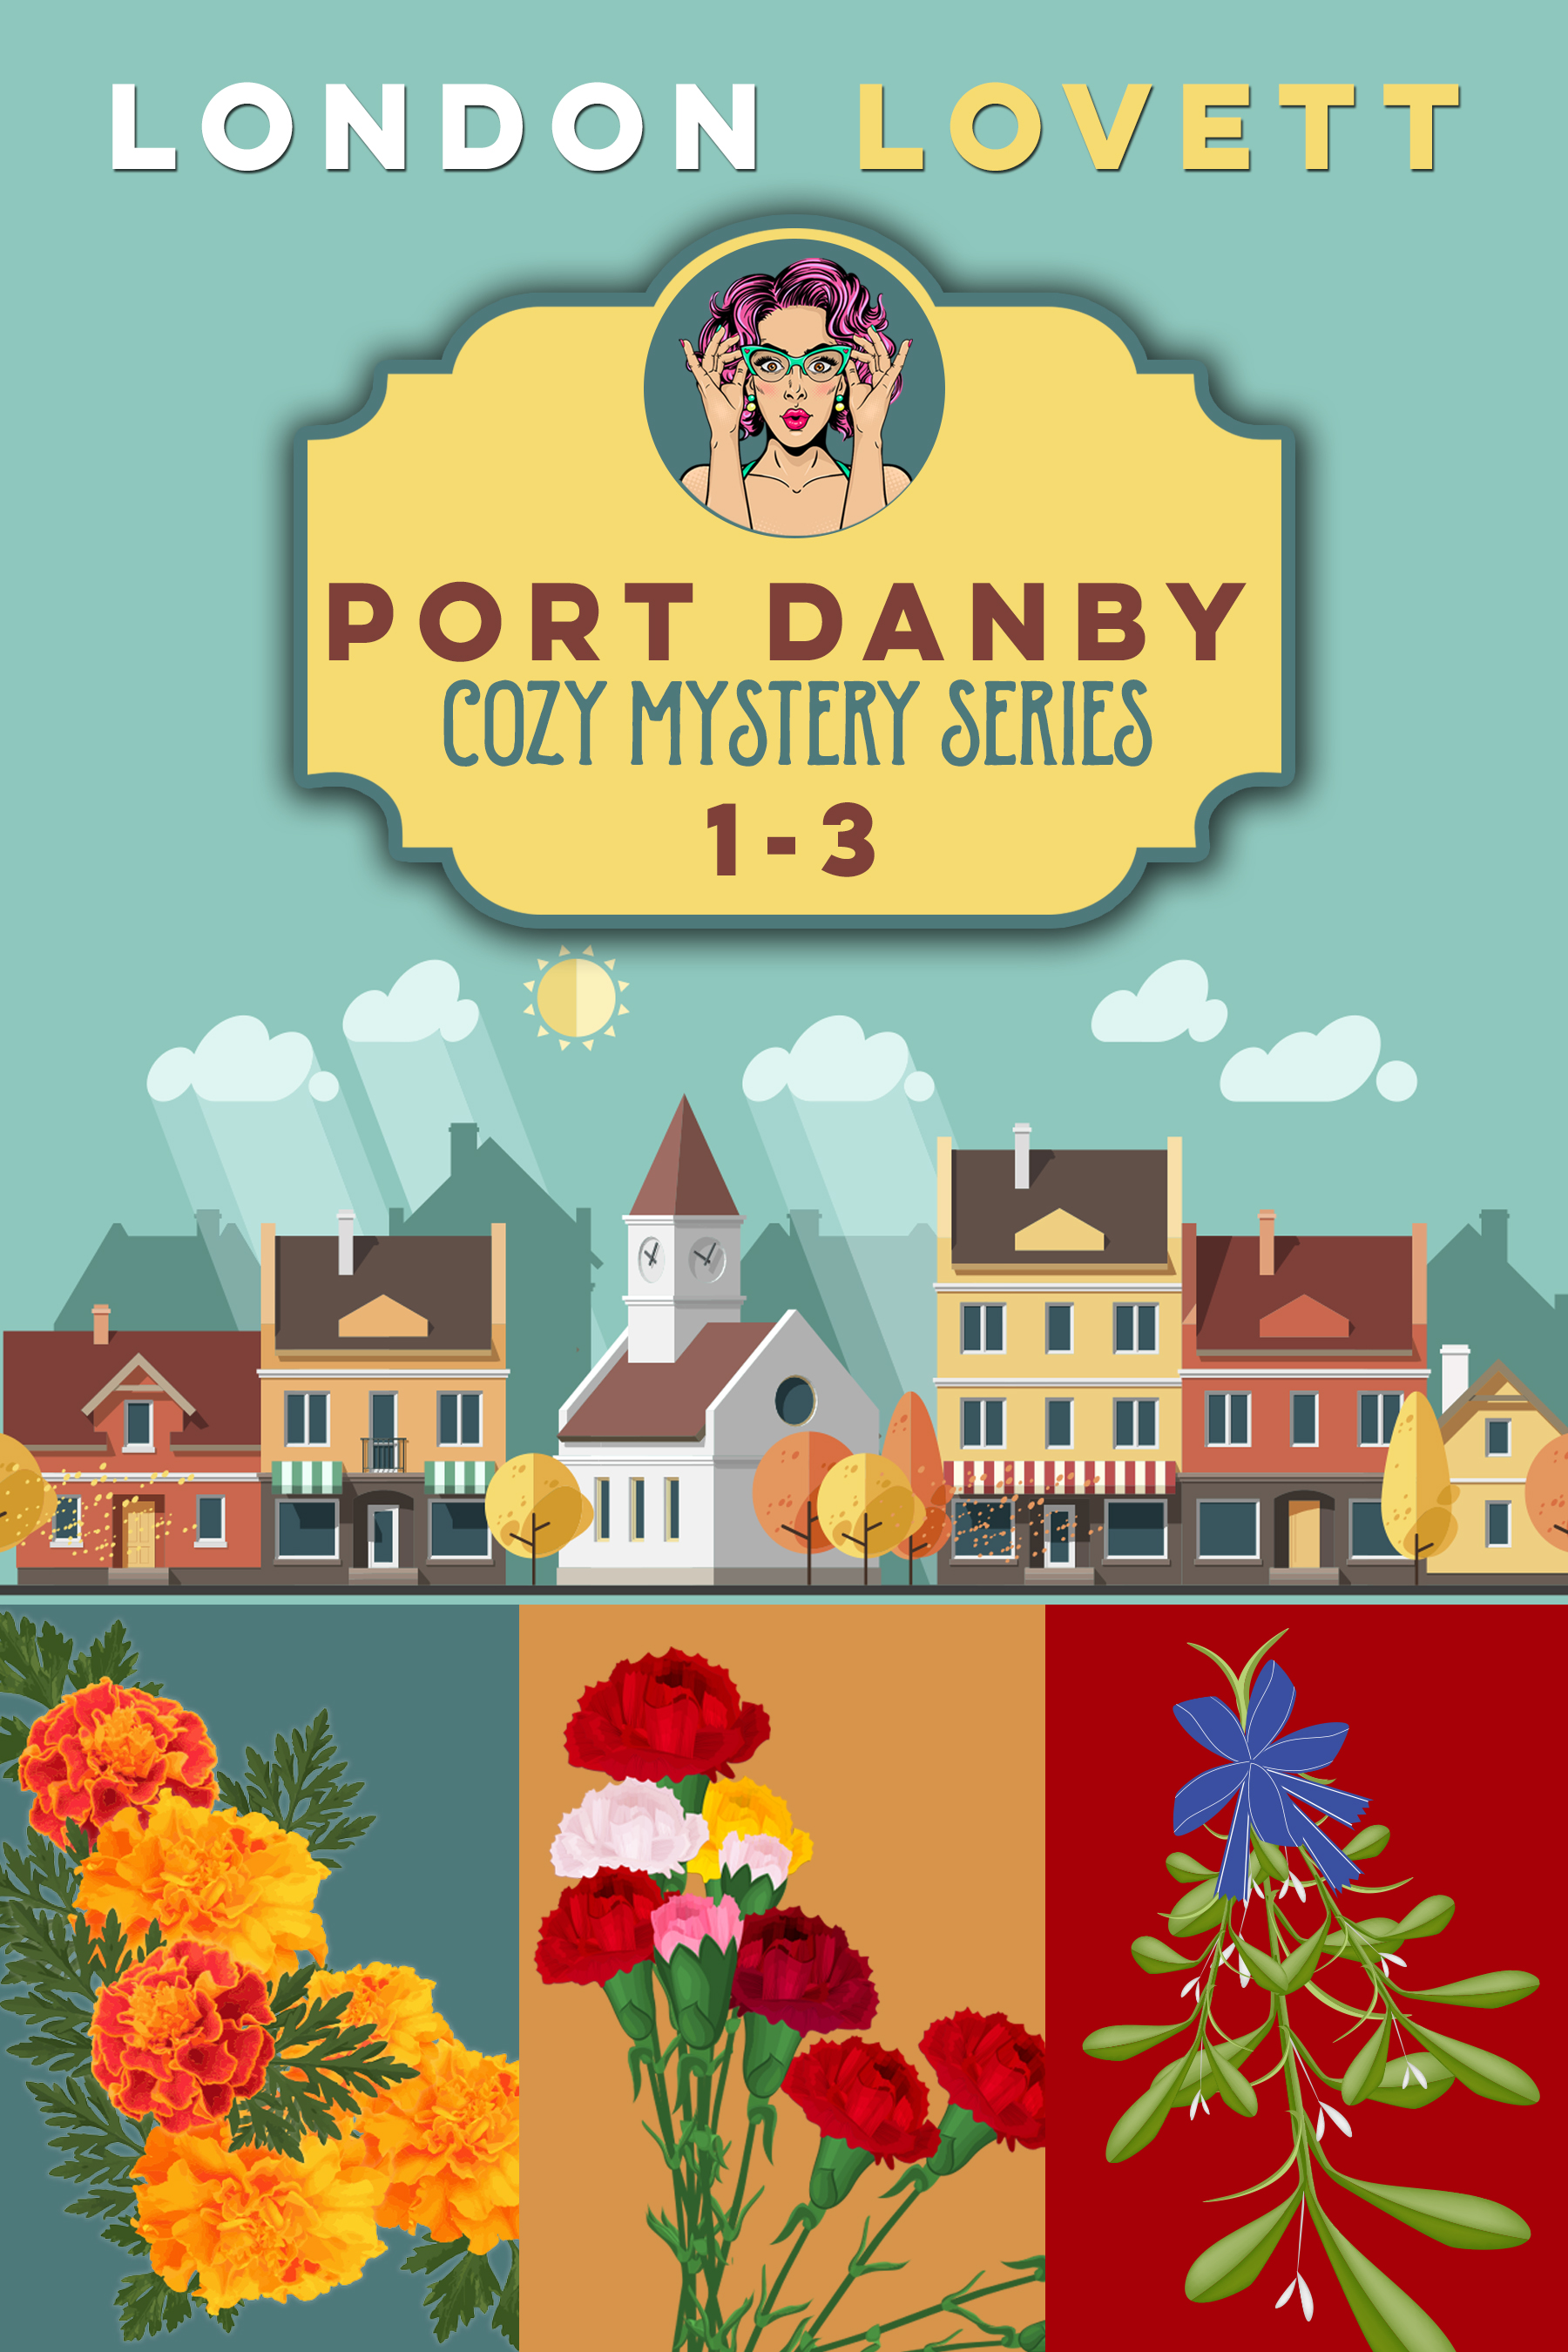 Port Danby Box Set (1-3) - This volume contains the first three complete cozy mysteries in London Lovett's Port Danby Cozy Mystery series. Join Lacey 'Pink' Pinkerton and the cast of colorful, lovable Port Danby characters—including the endearing and handsome Detective James Briggs—for three intriguing murder mysteries.Read on: Amazon iBooks Nook Kobo Google